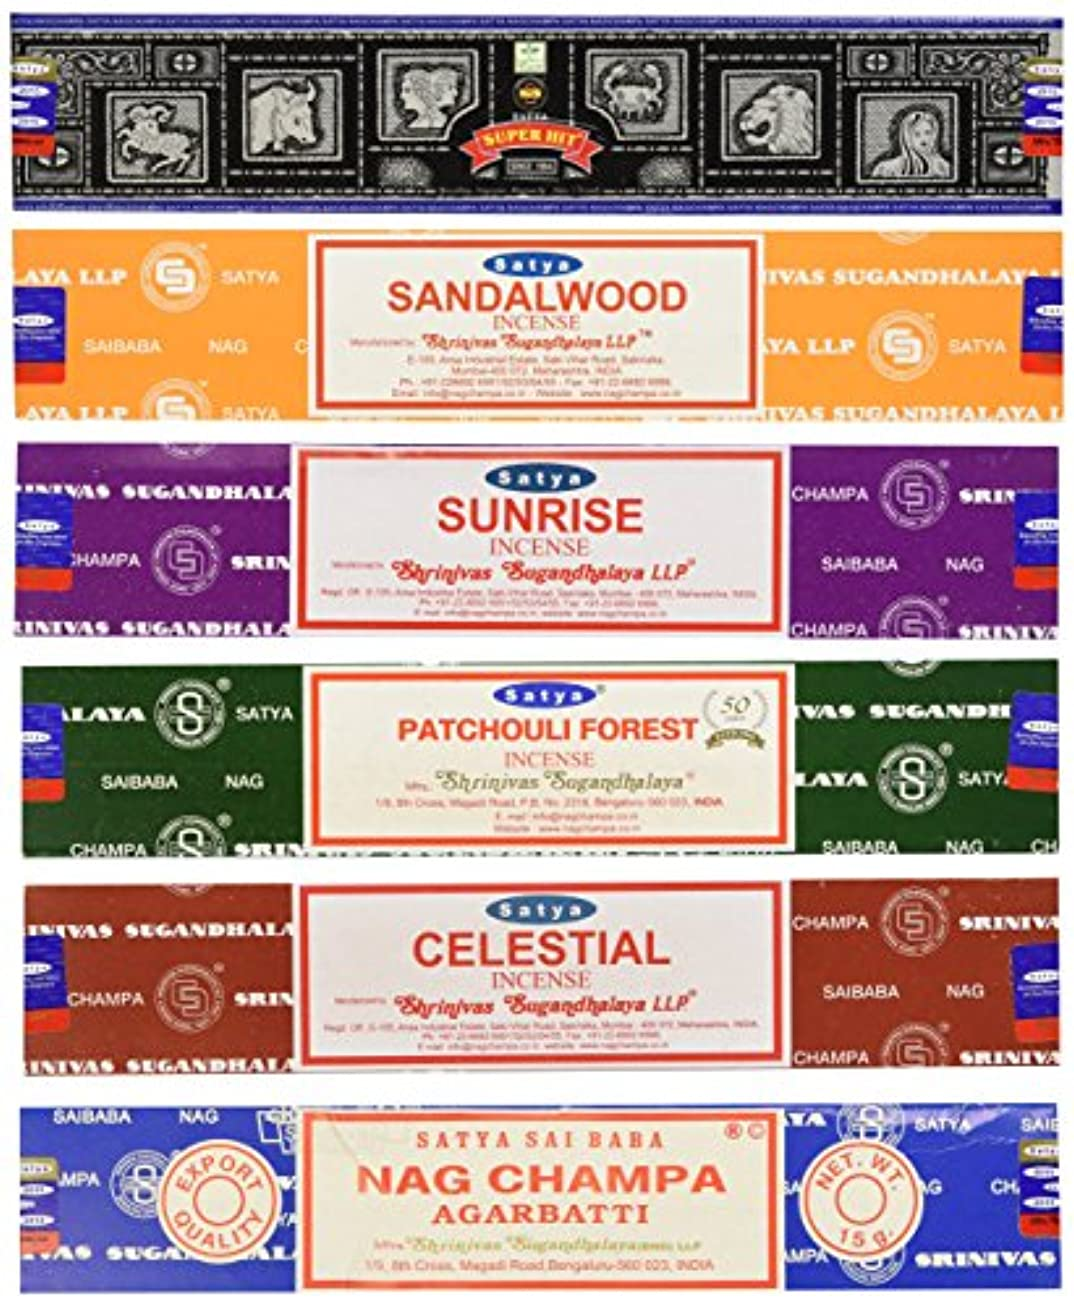 マットレス仲良し電気陽性Set of 6 Nag Champa Sunrise Sandalwood Patchouli Celestial Super Hit by Satya